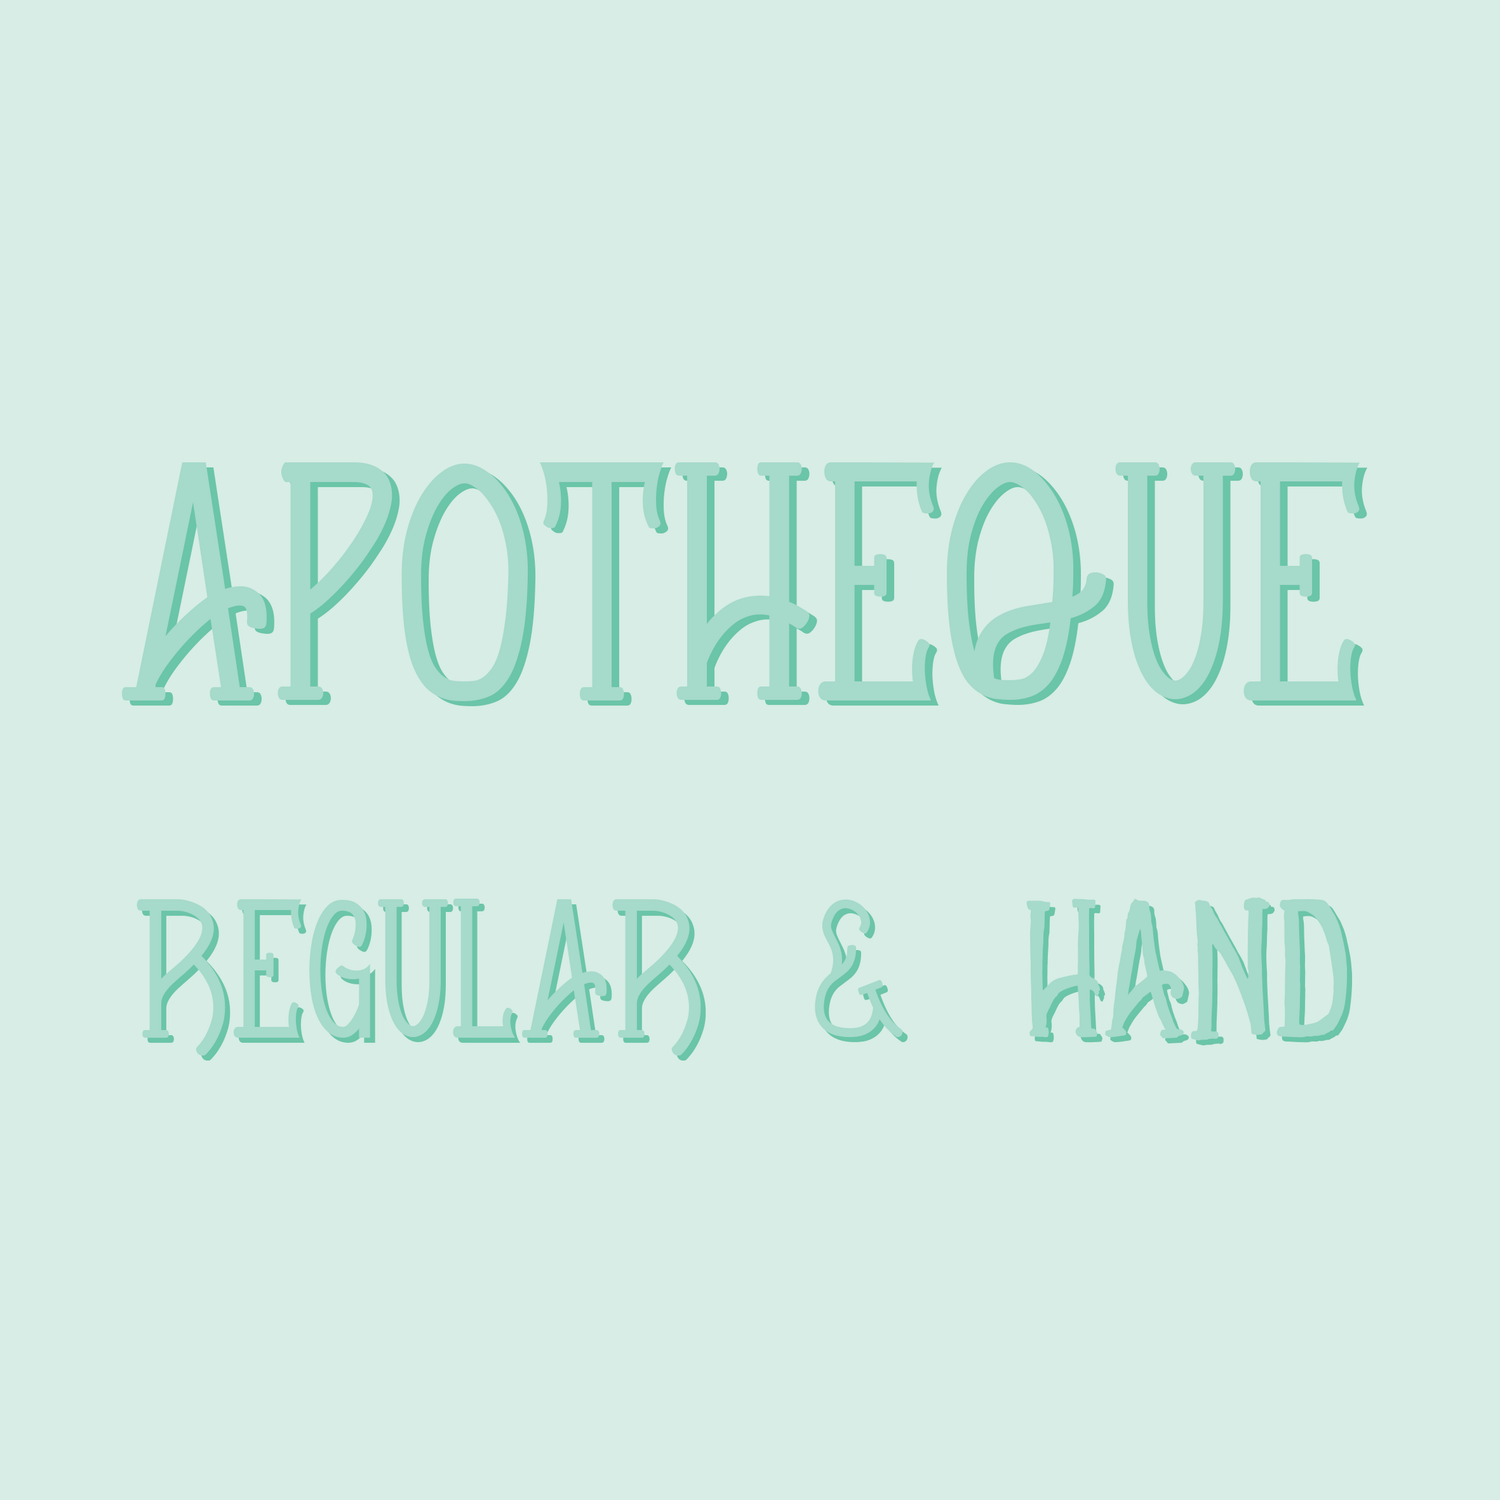 Image of Apotheque Font